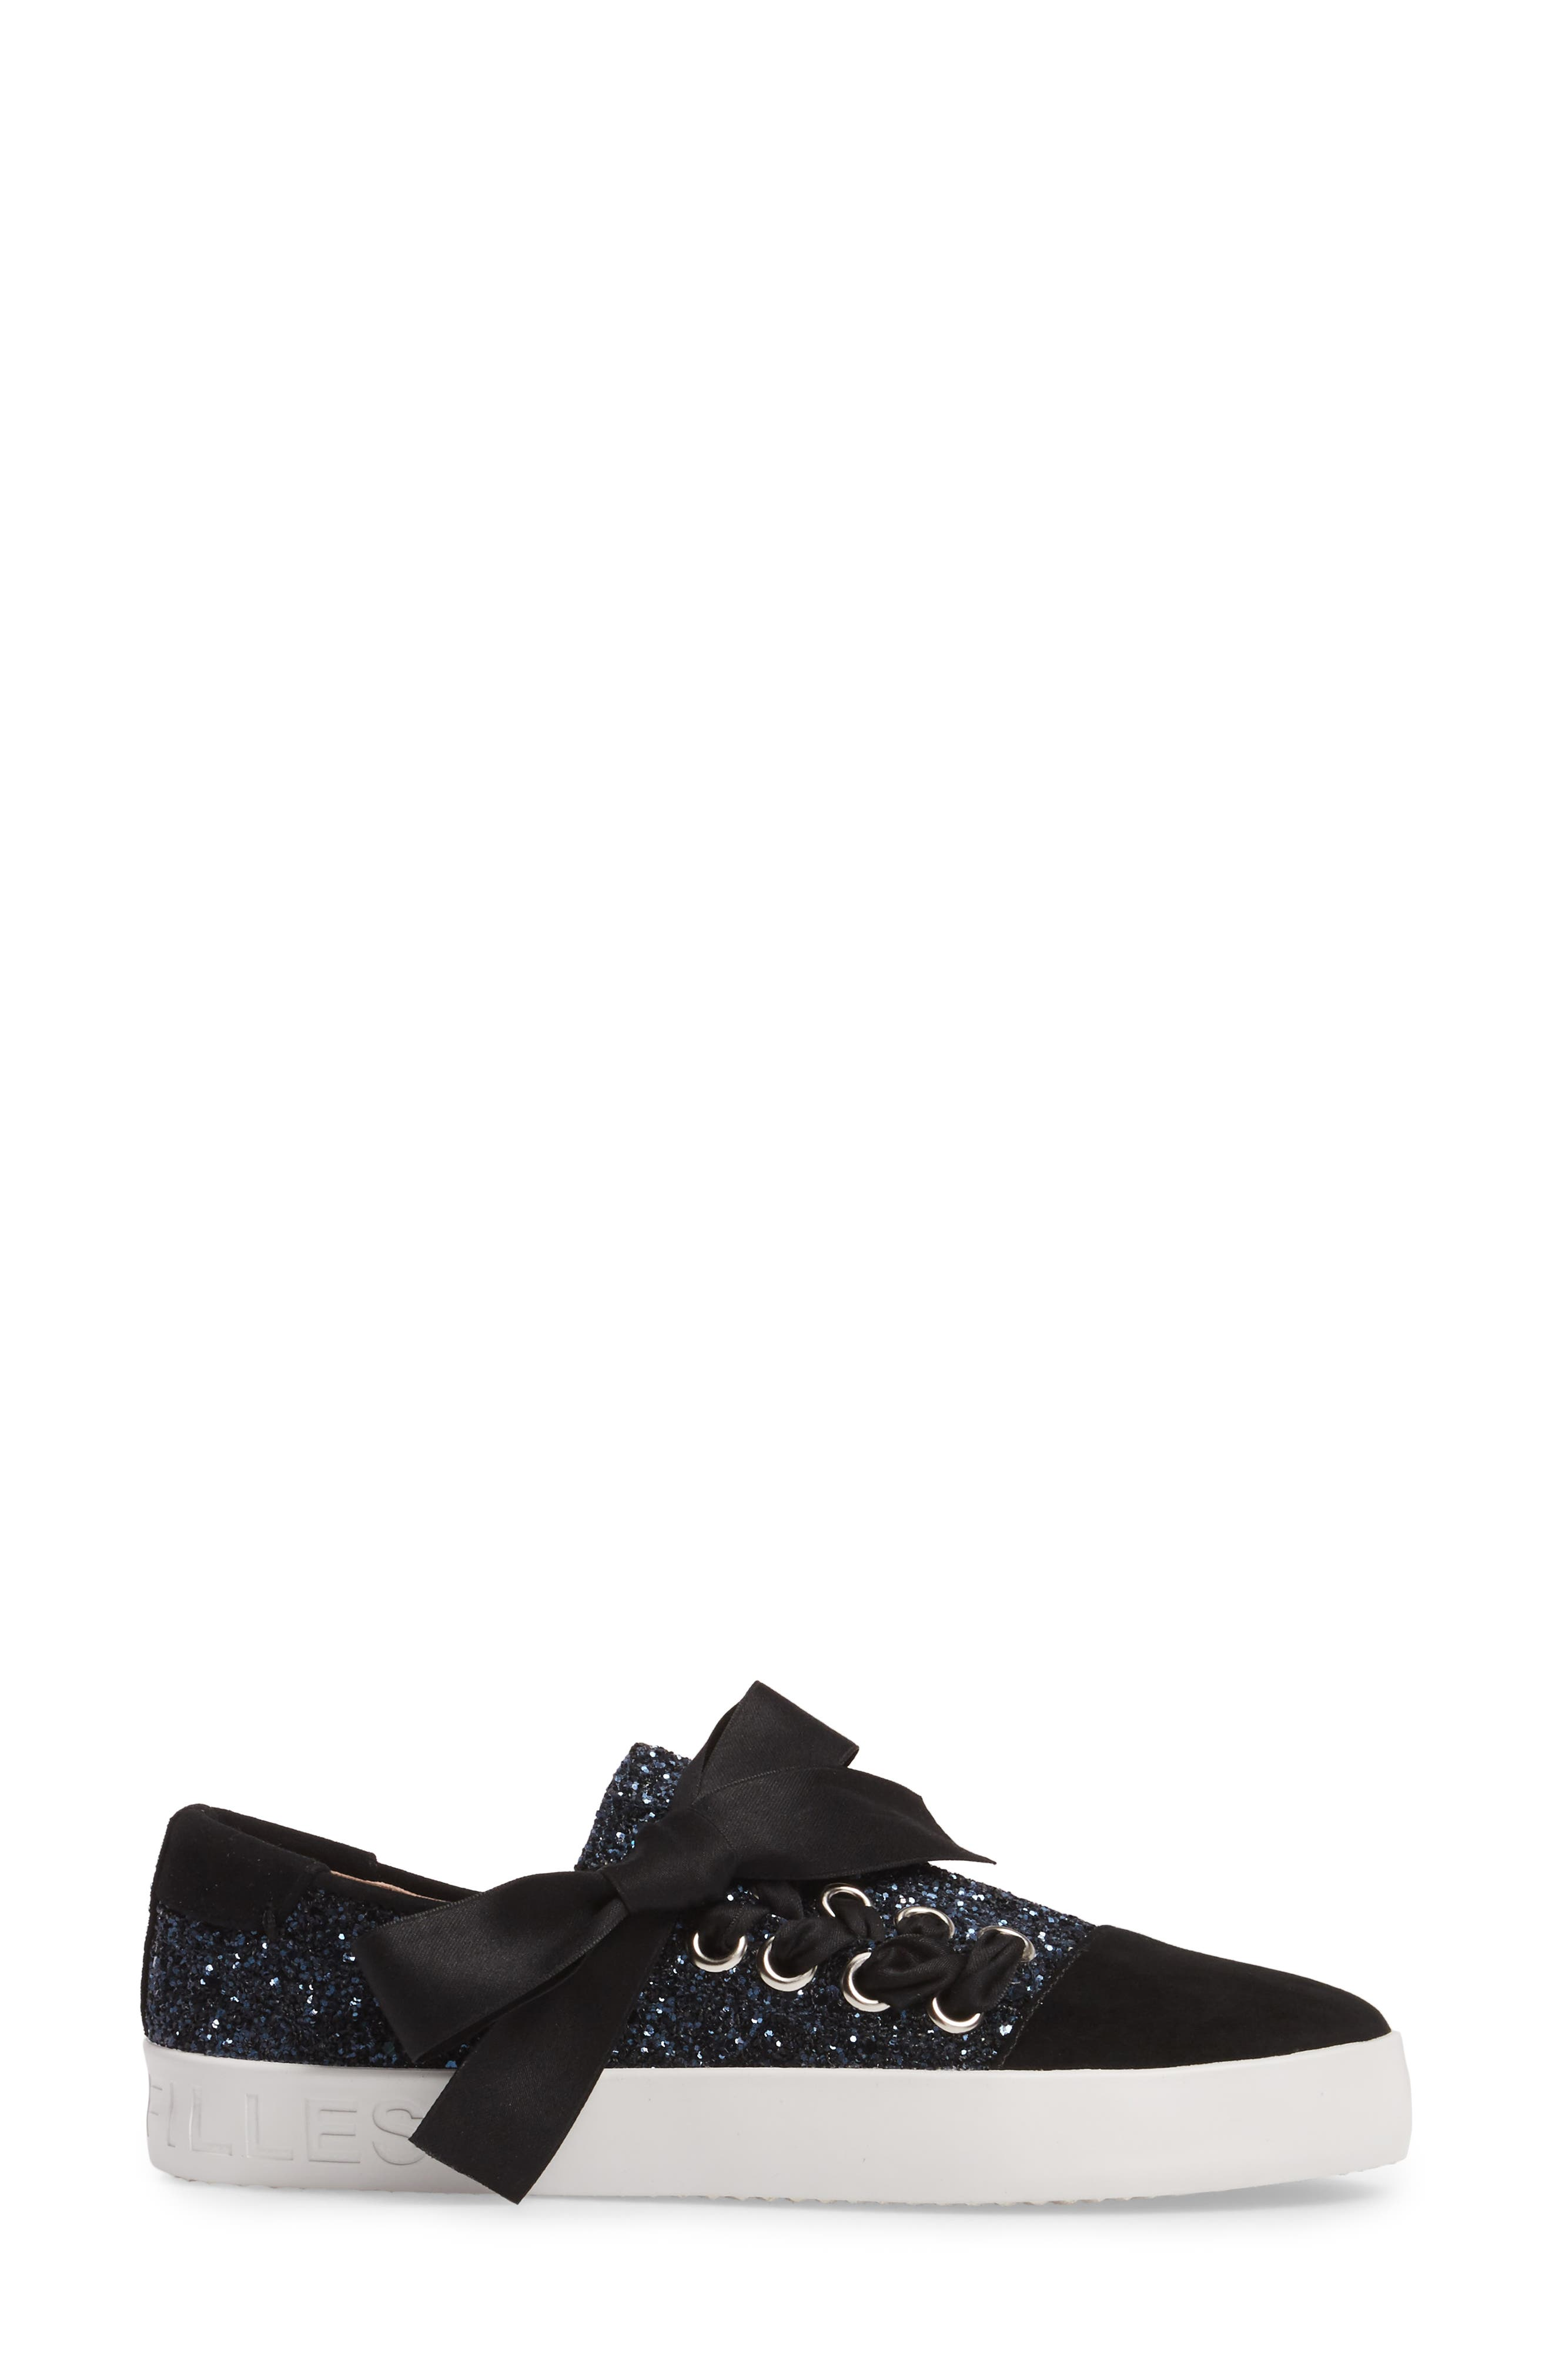 Vera Sneaker,                             Alternate thumbnail 3, color,                             Midnight Navy Fabric